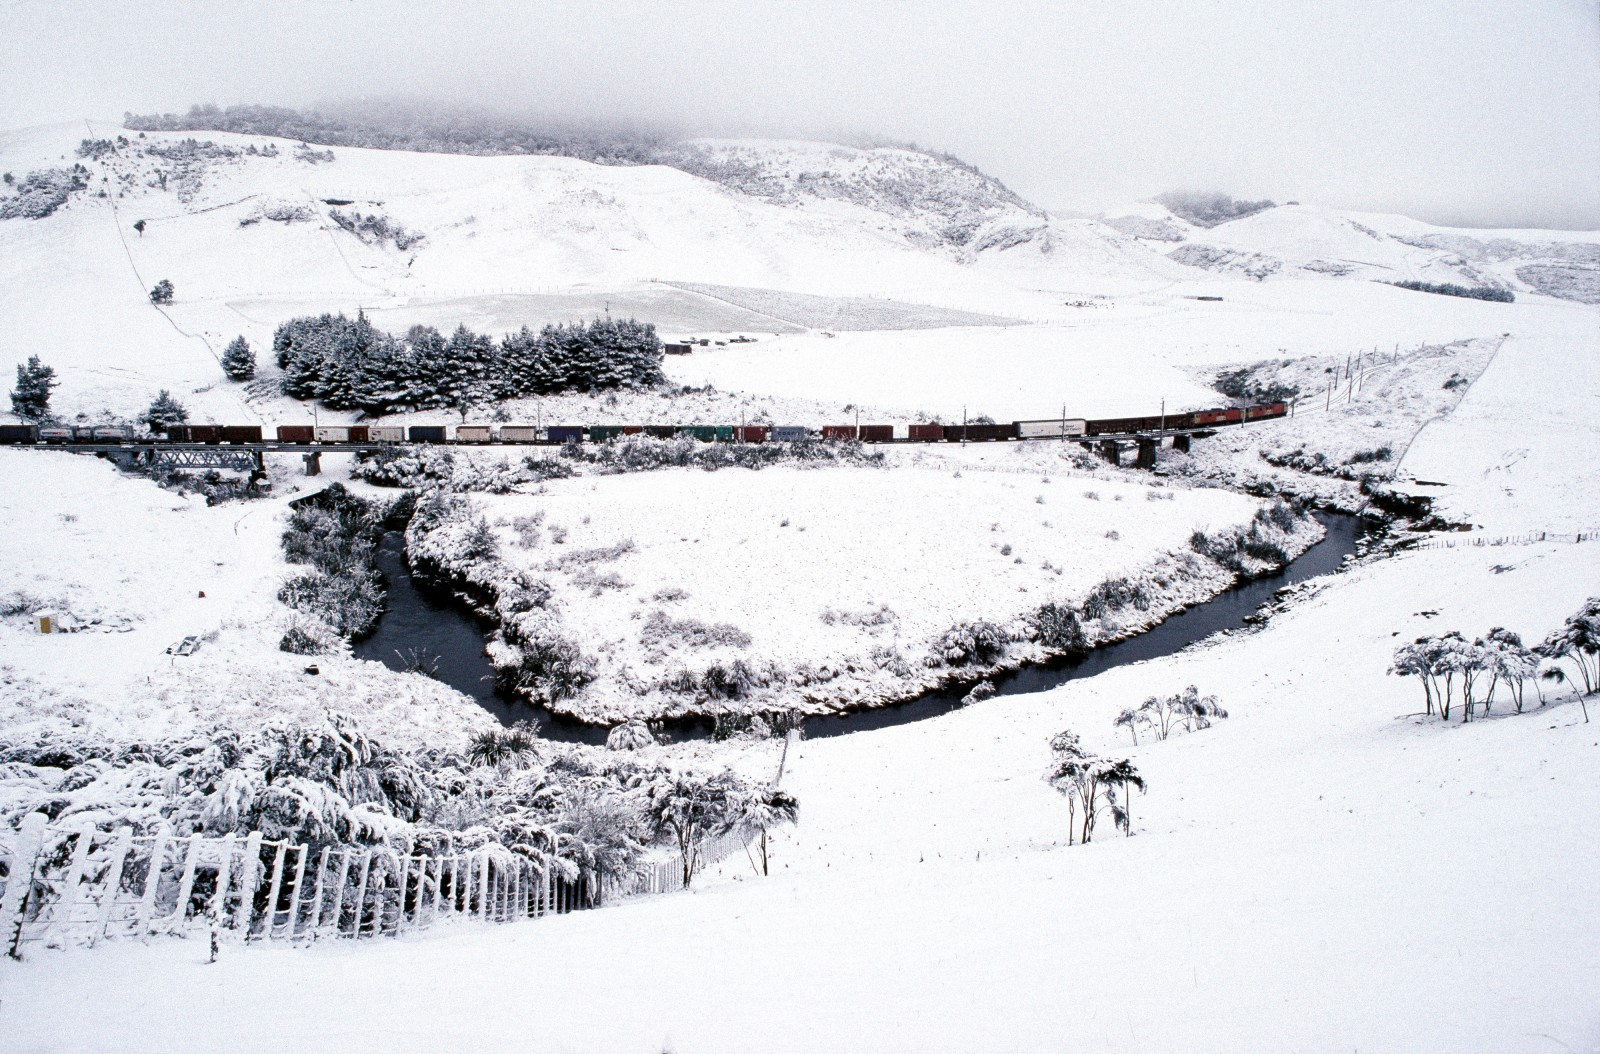 Untroubled by the mantle of snow that often closes the nearby Desert Road, a freight train rumbles through the central North Island winter south of Waiouru. Freight accounts for 70 per cent of rail revenues, and the North Island Main Trunk Line carries over a third of all freight transported by rail in the country.